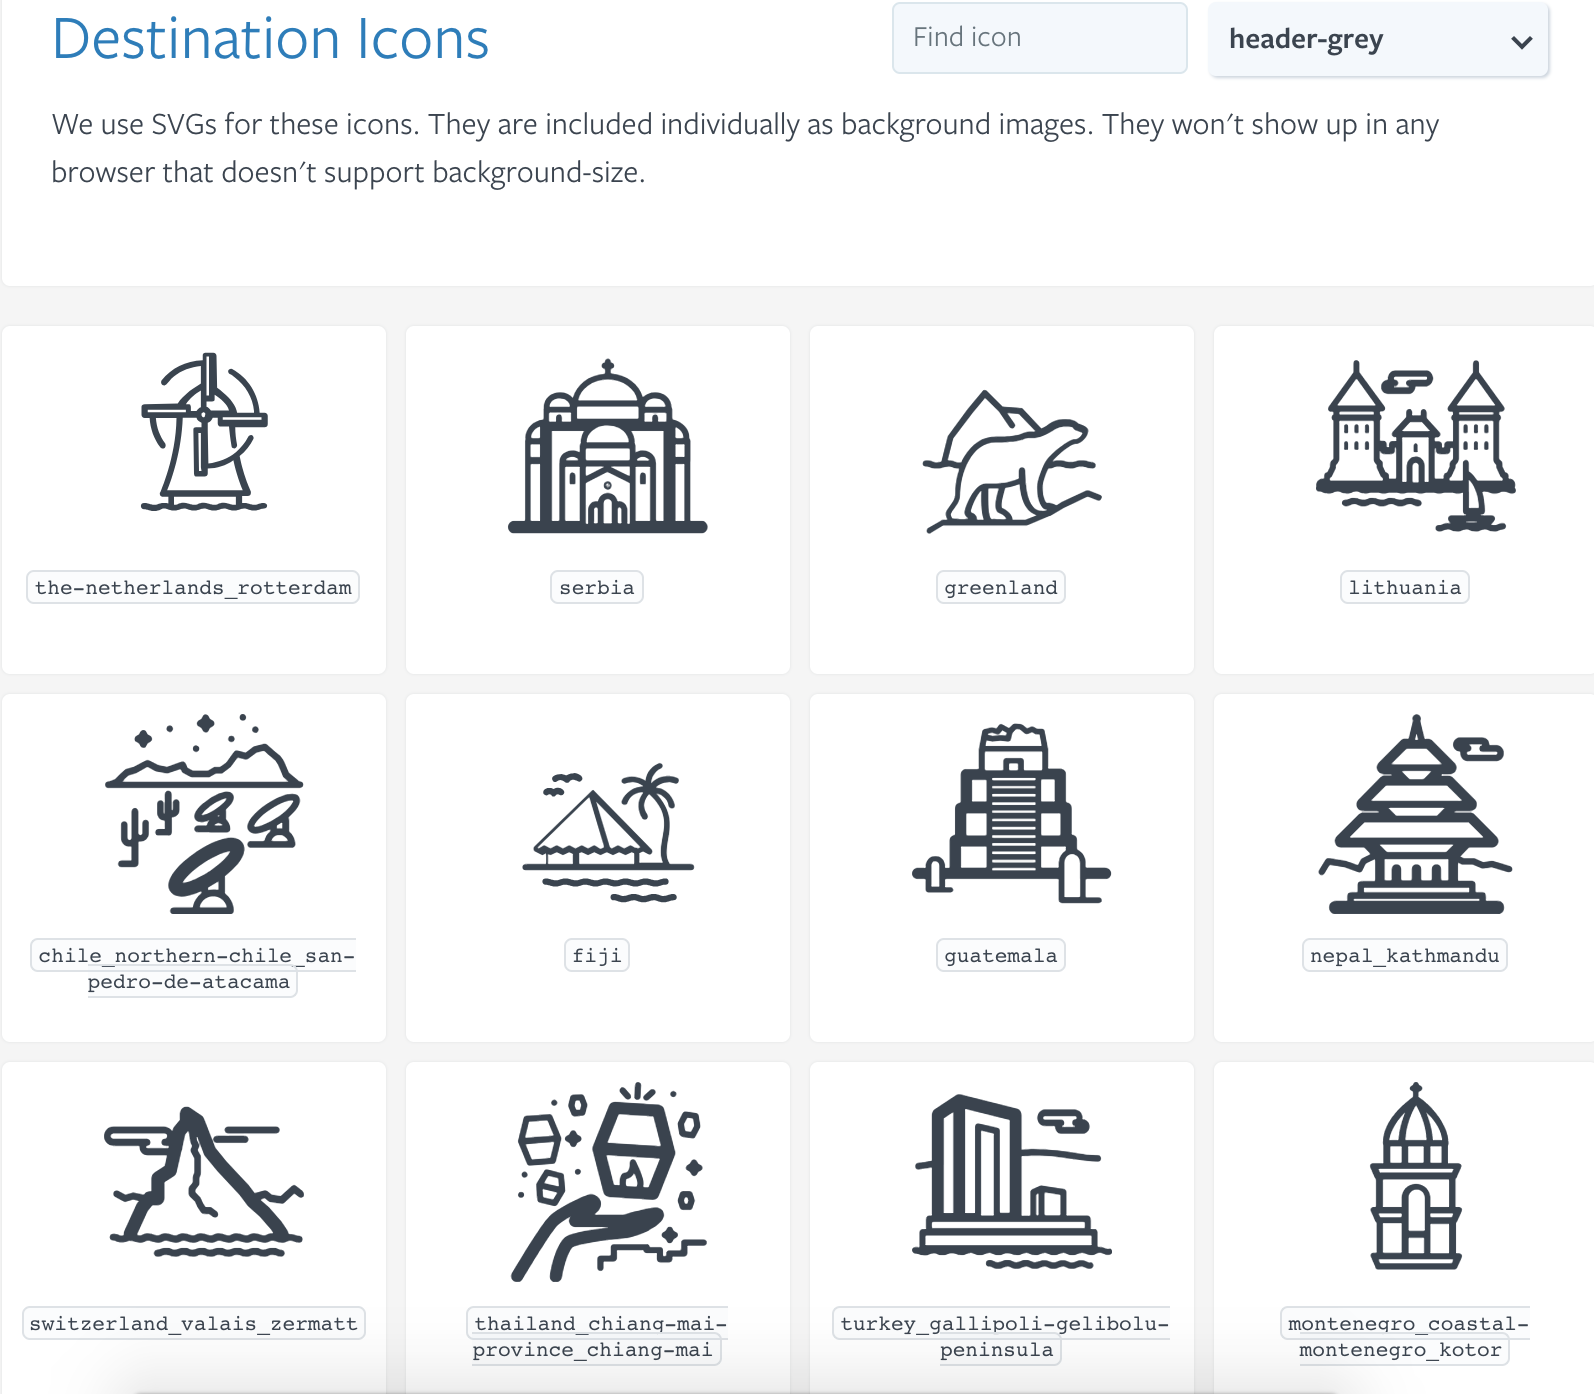 Icon catalog in Lonely Planet's style guide